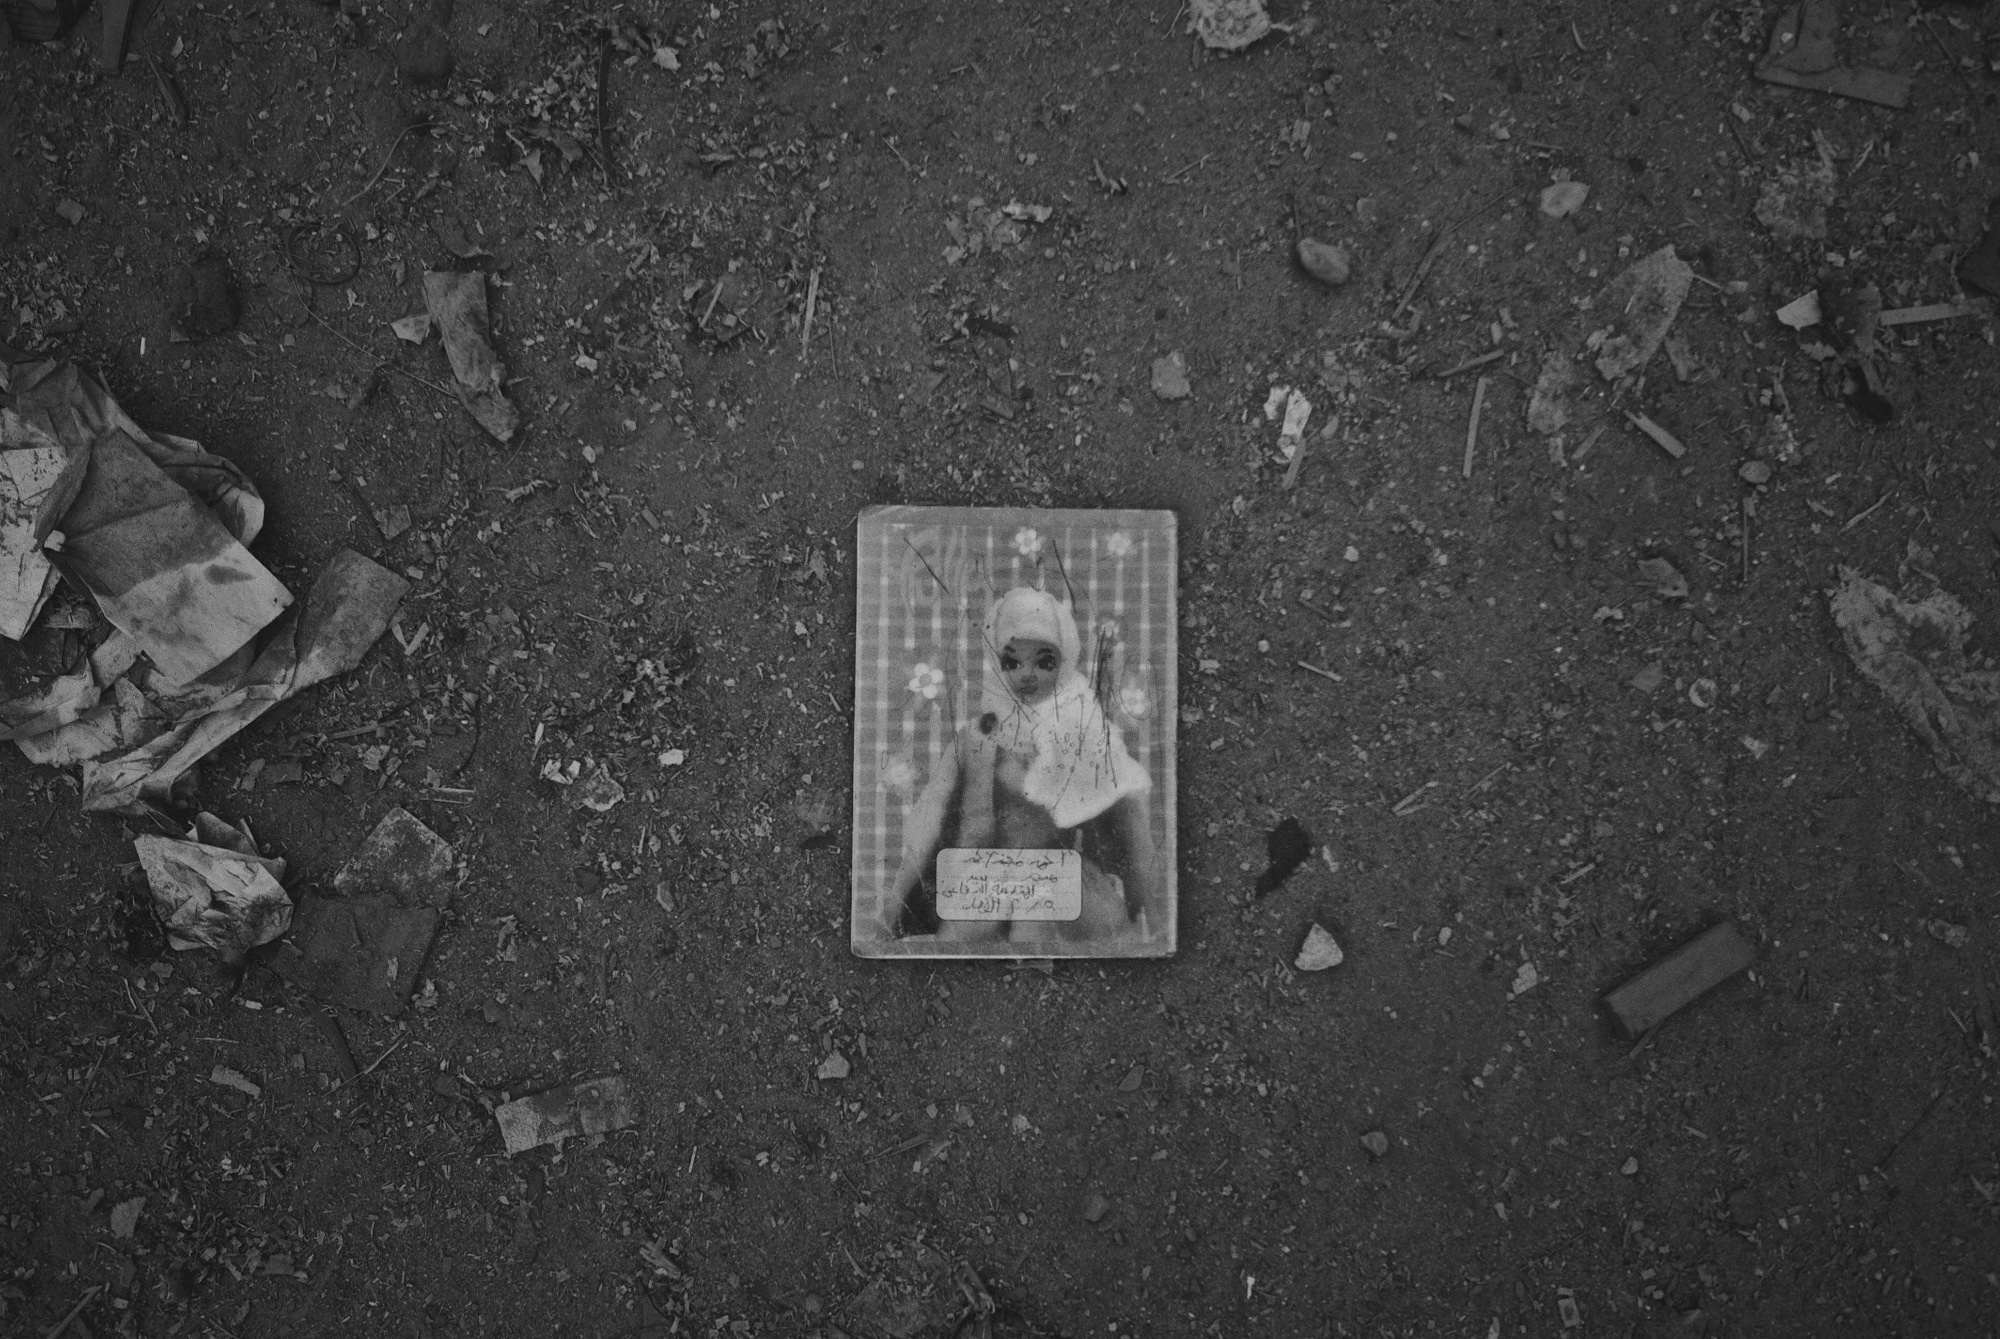 denis-bosnic-cairo-egypt-bw-photography-7-notebook-barbie-dirt-street.jpg